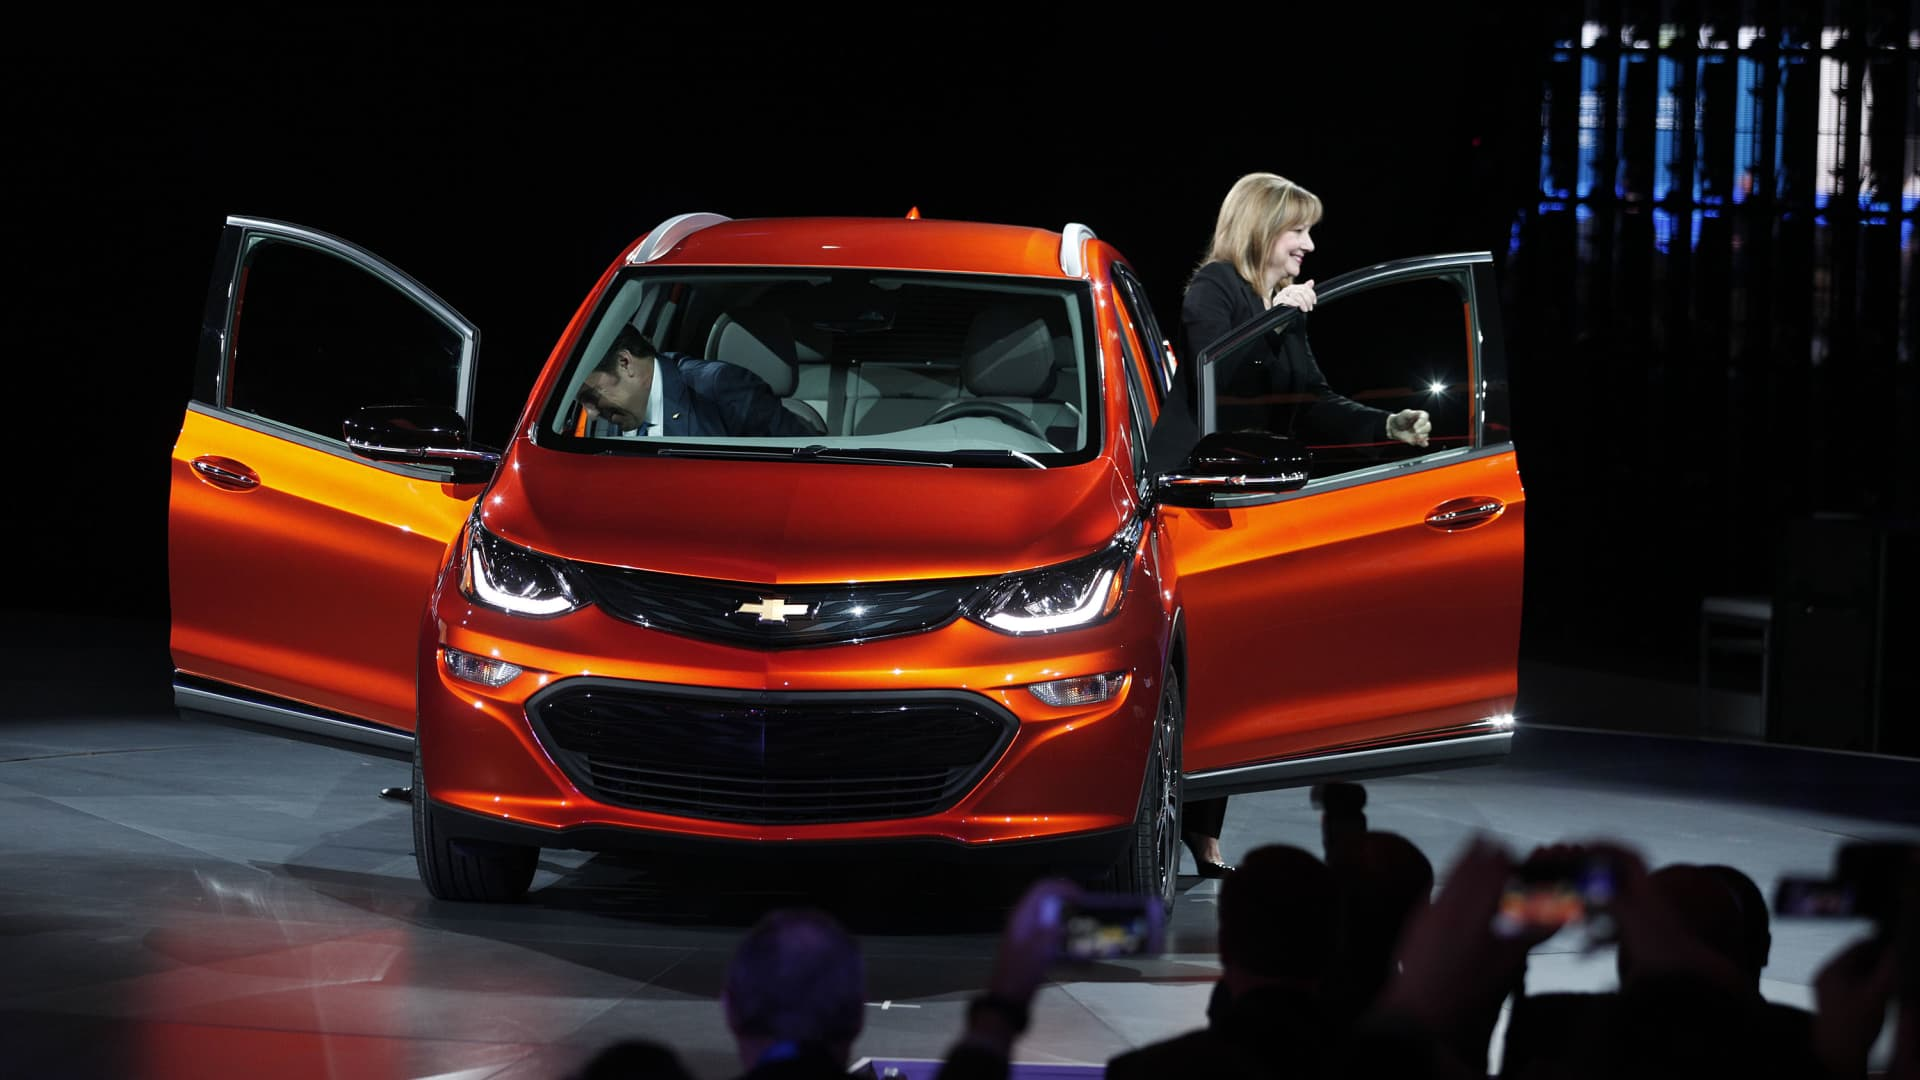 Mary Barra, Chairman and CEO of General Motors, and Mark Reuss, Executive Vice President of GM Global Product Development, reveal the Chevrolet Bolt EVto the news media at the 2016 North American International Auto Show January 11th, 2016 in Detroit, Michigan.